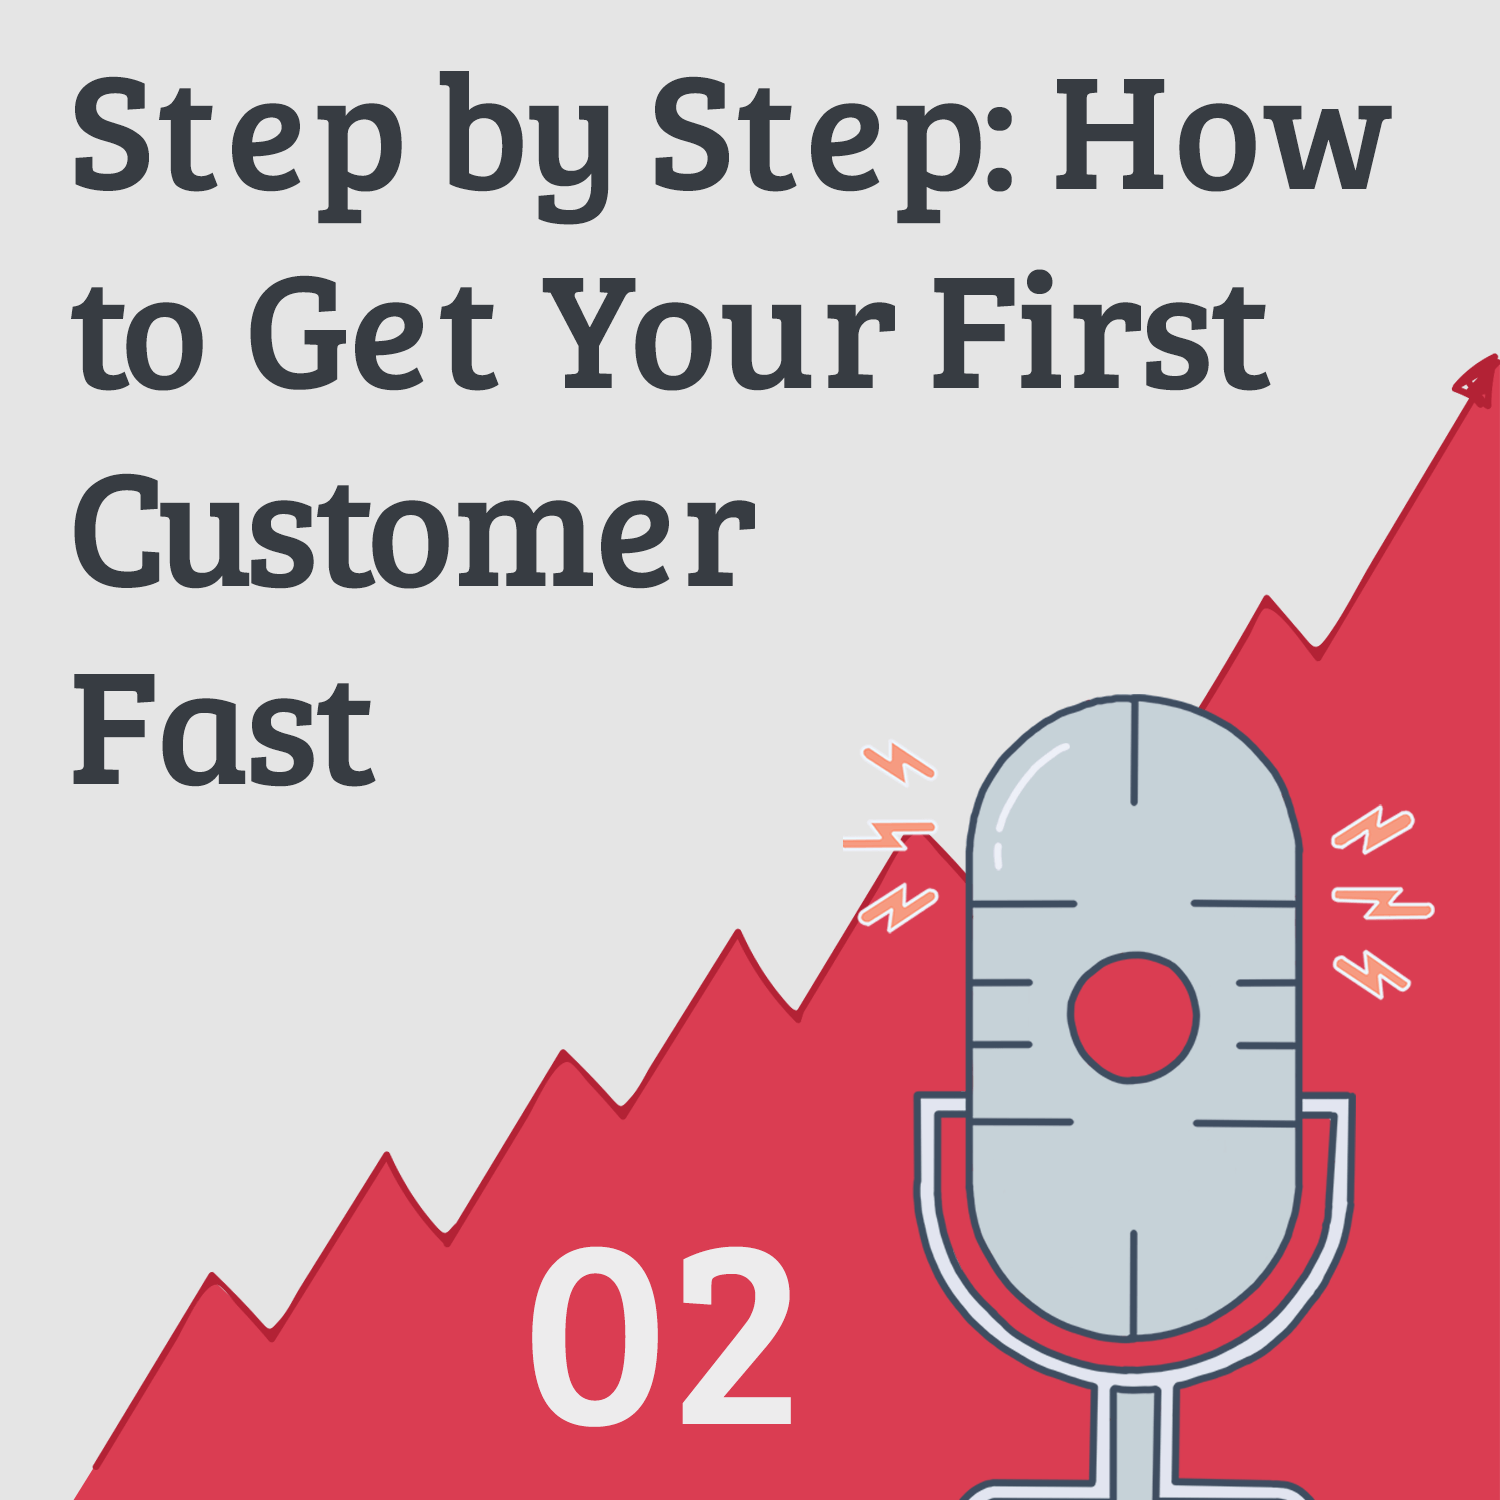 Forget Traffic 2: Step by Step Plan to Get Your First Customer (Without Needing Traffic)